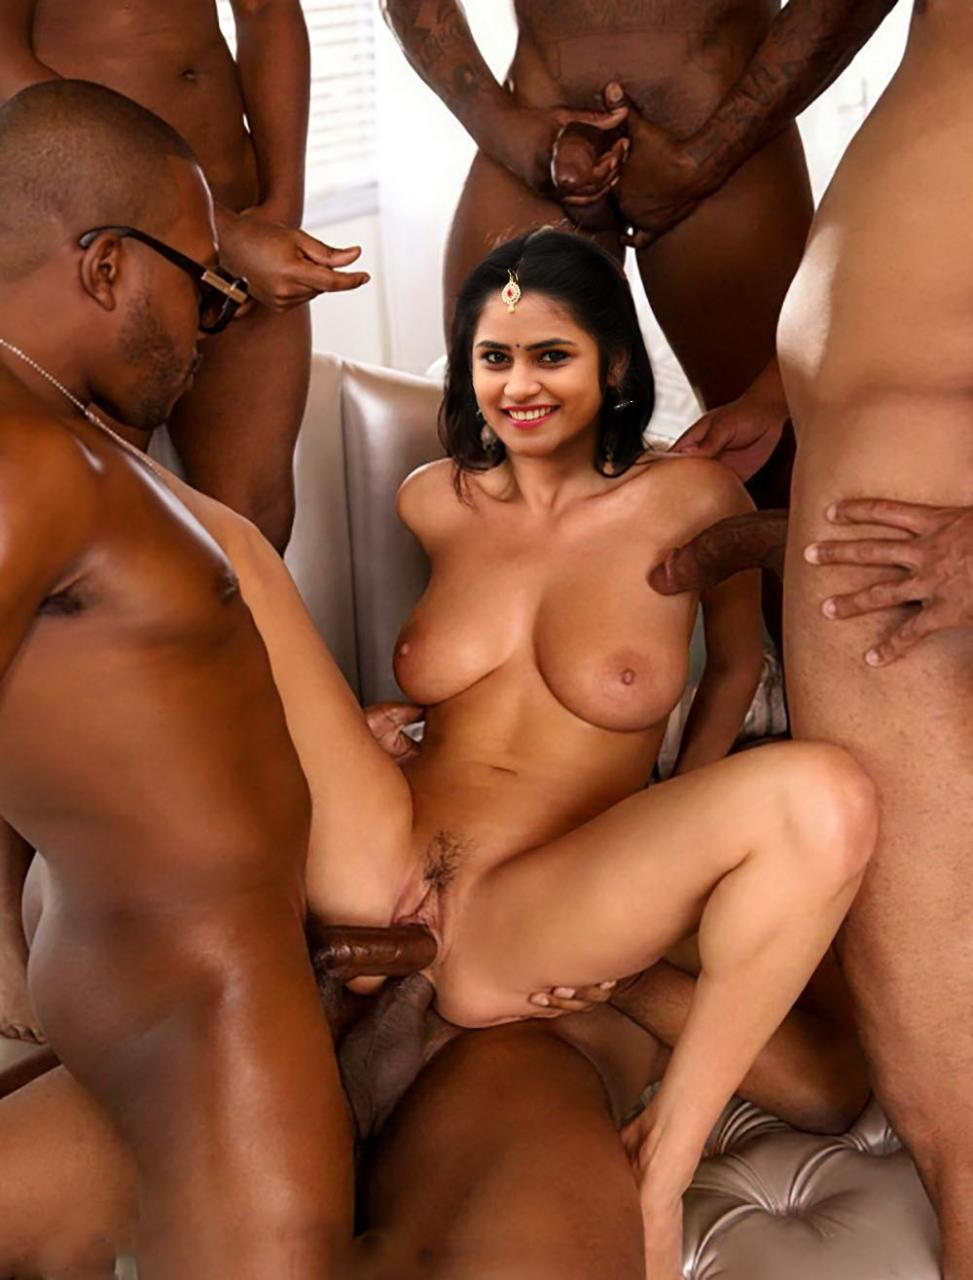 sakshi sivanand Nude Shows Ass Fucked By Cock in Ass Sex